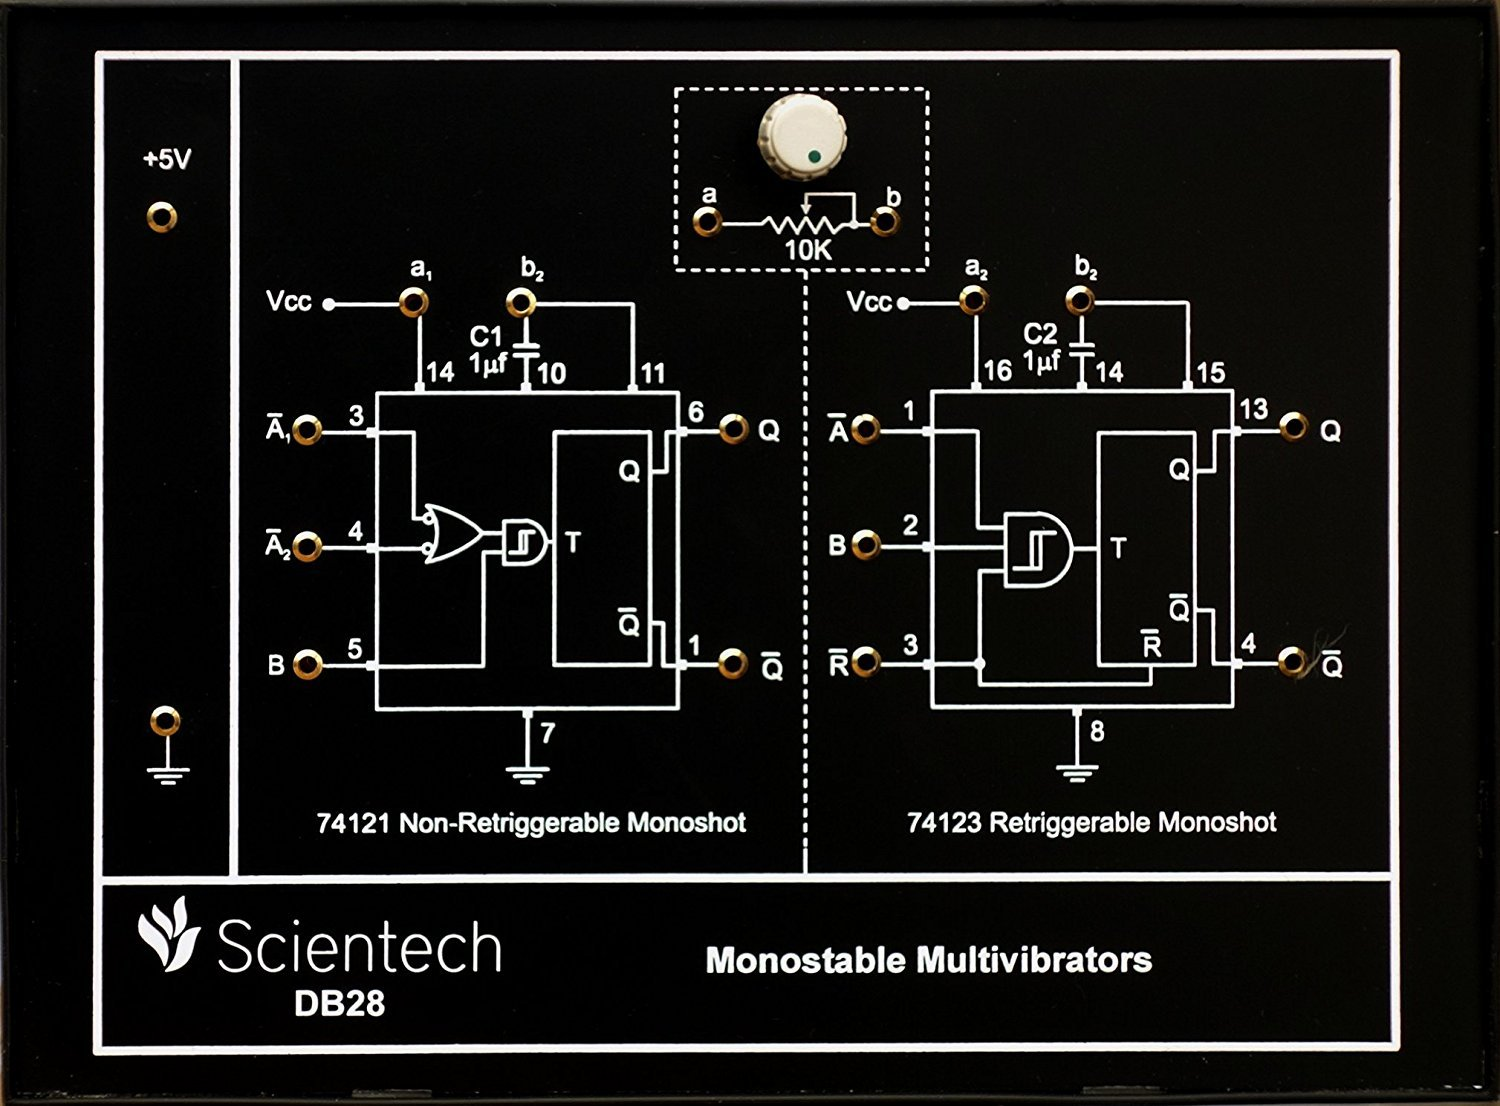 Db28 Monostable Multivibrator Experiment Board And Trainer Kit Symmetric 5v To Cmos Ttl Level Shifter With 1 Year Warranty